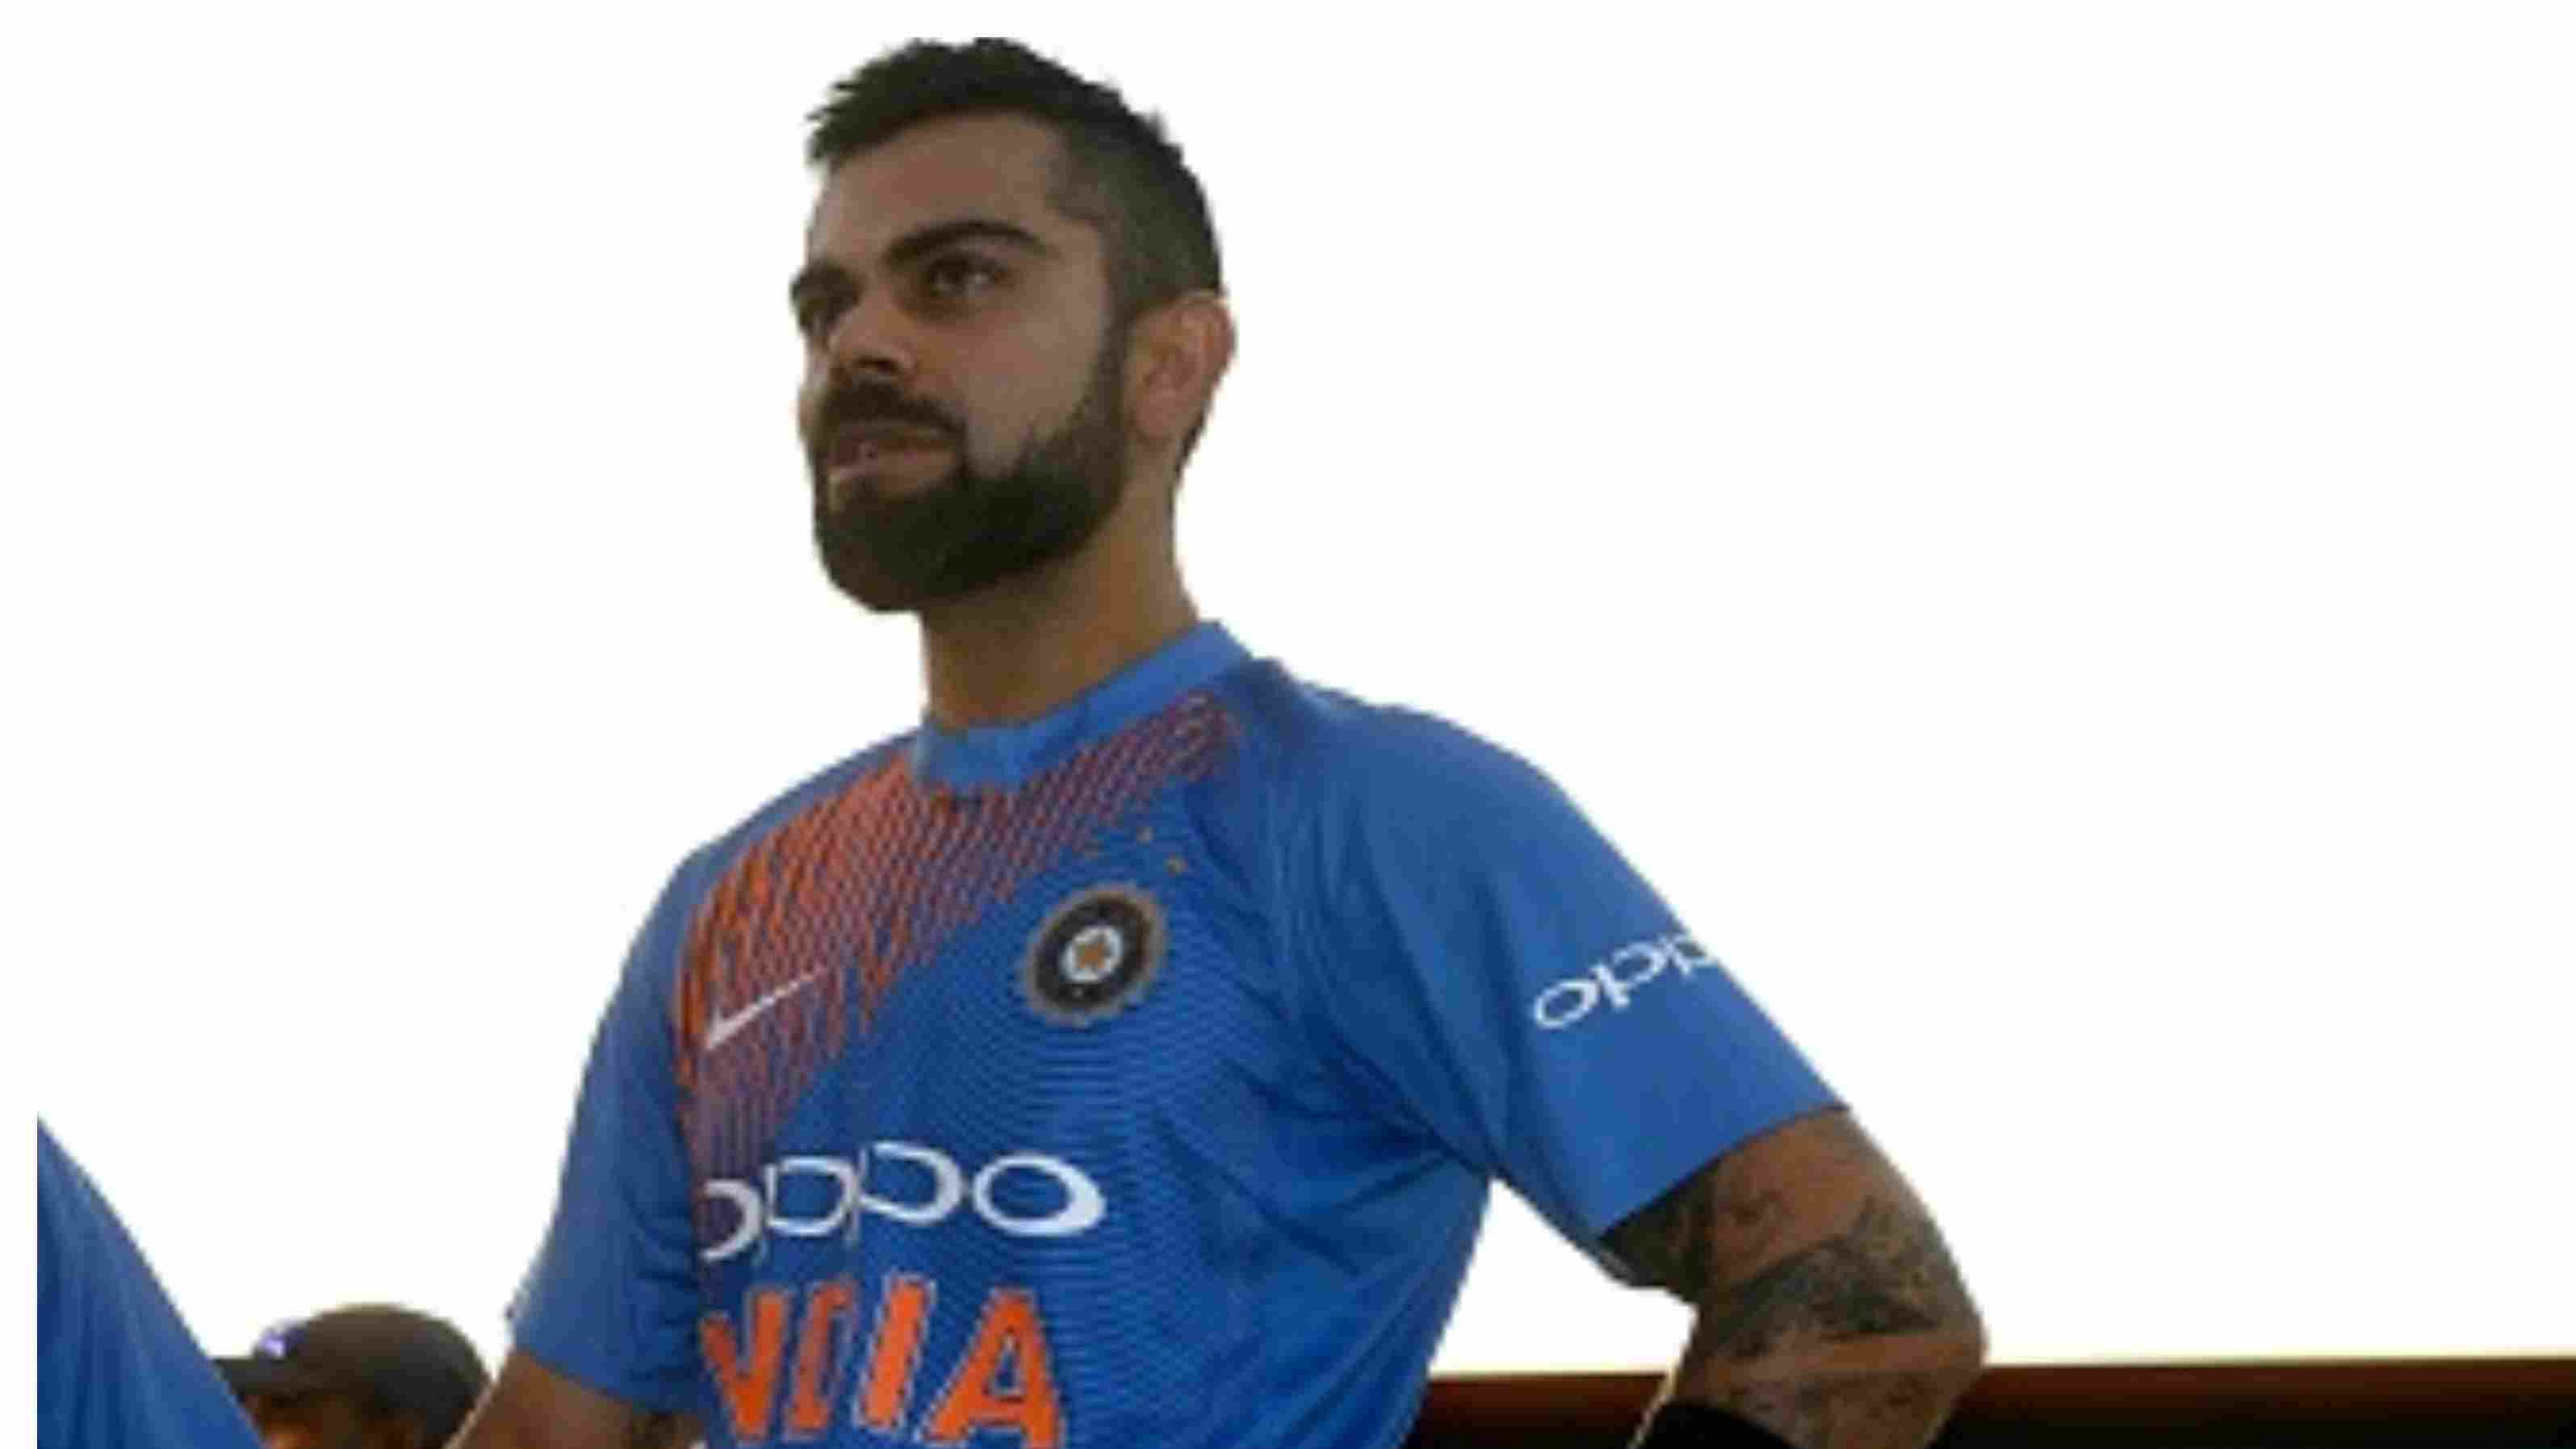 ENG v IND 2018: Virat Kohli expresses his emotions on representing India